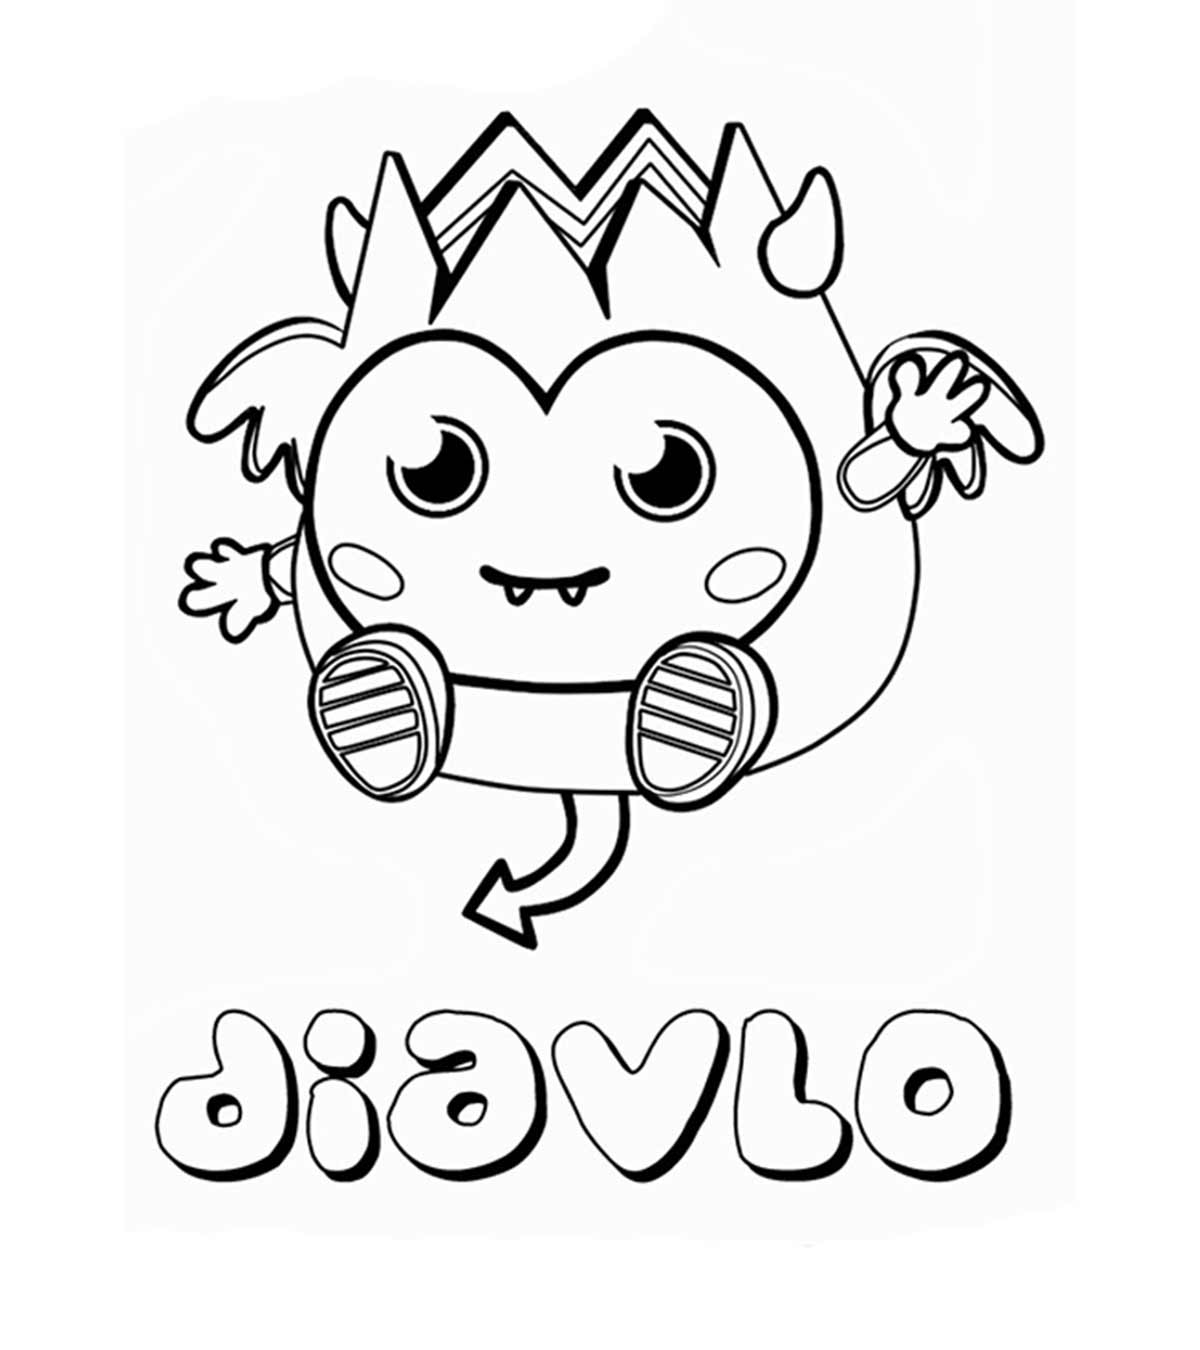 Moshi Monsters Jeepers coloring page | Free Printable Coloring Pages | 1350x1200